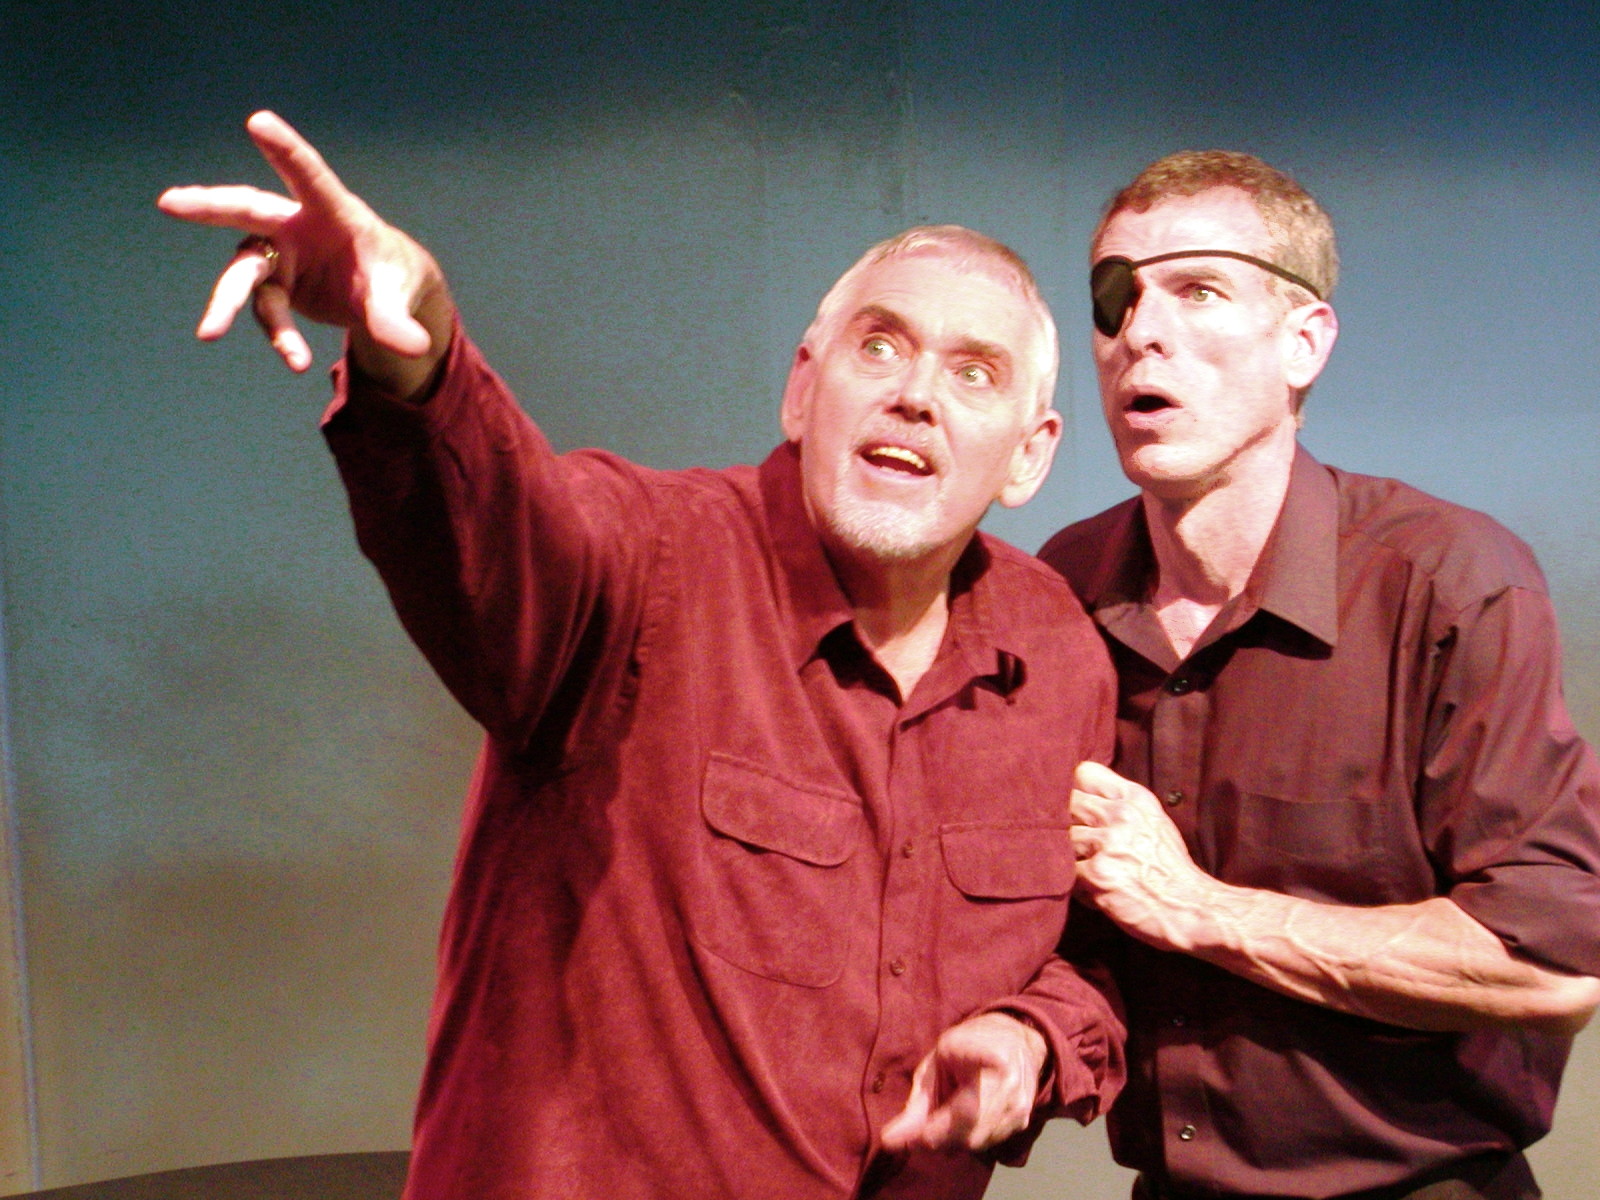 Actors Jim Brochu and Steve Schalchlin performing in The Big Voice: God or Merman play.